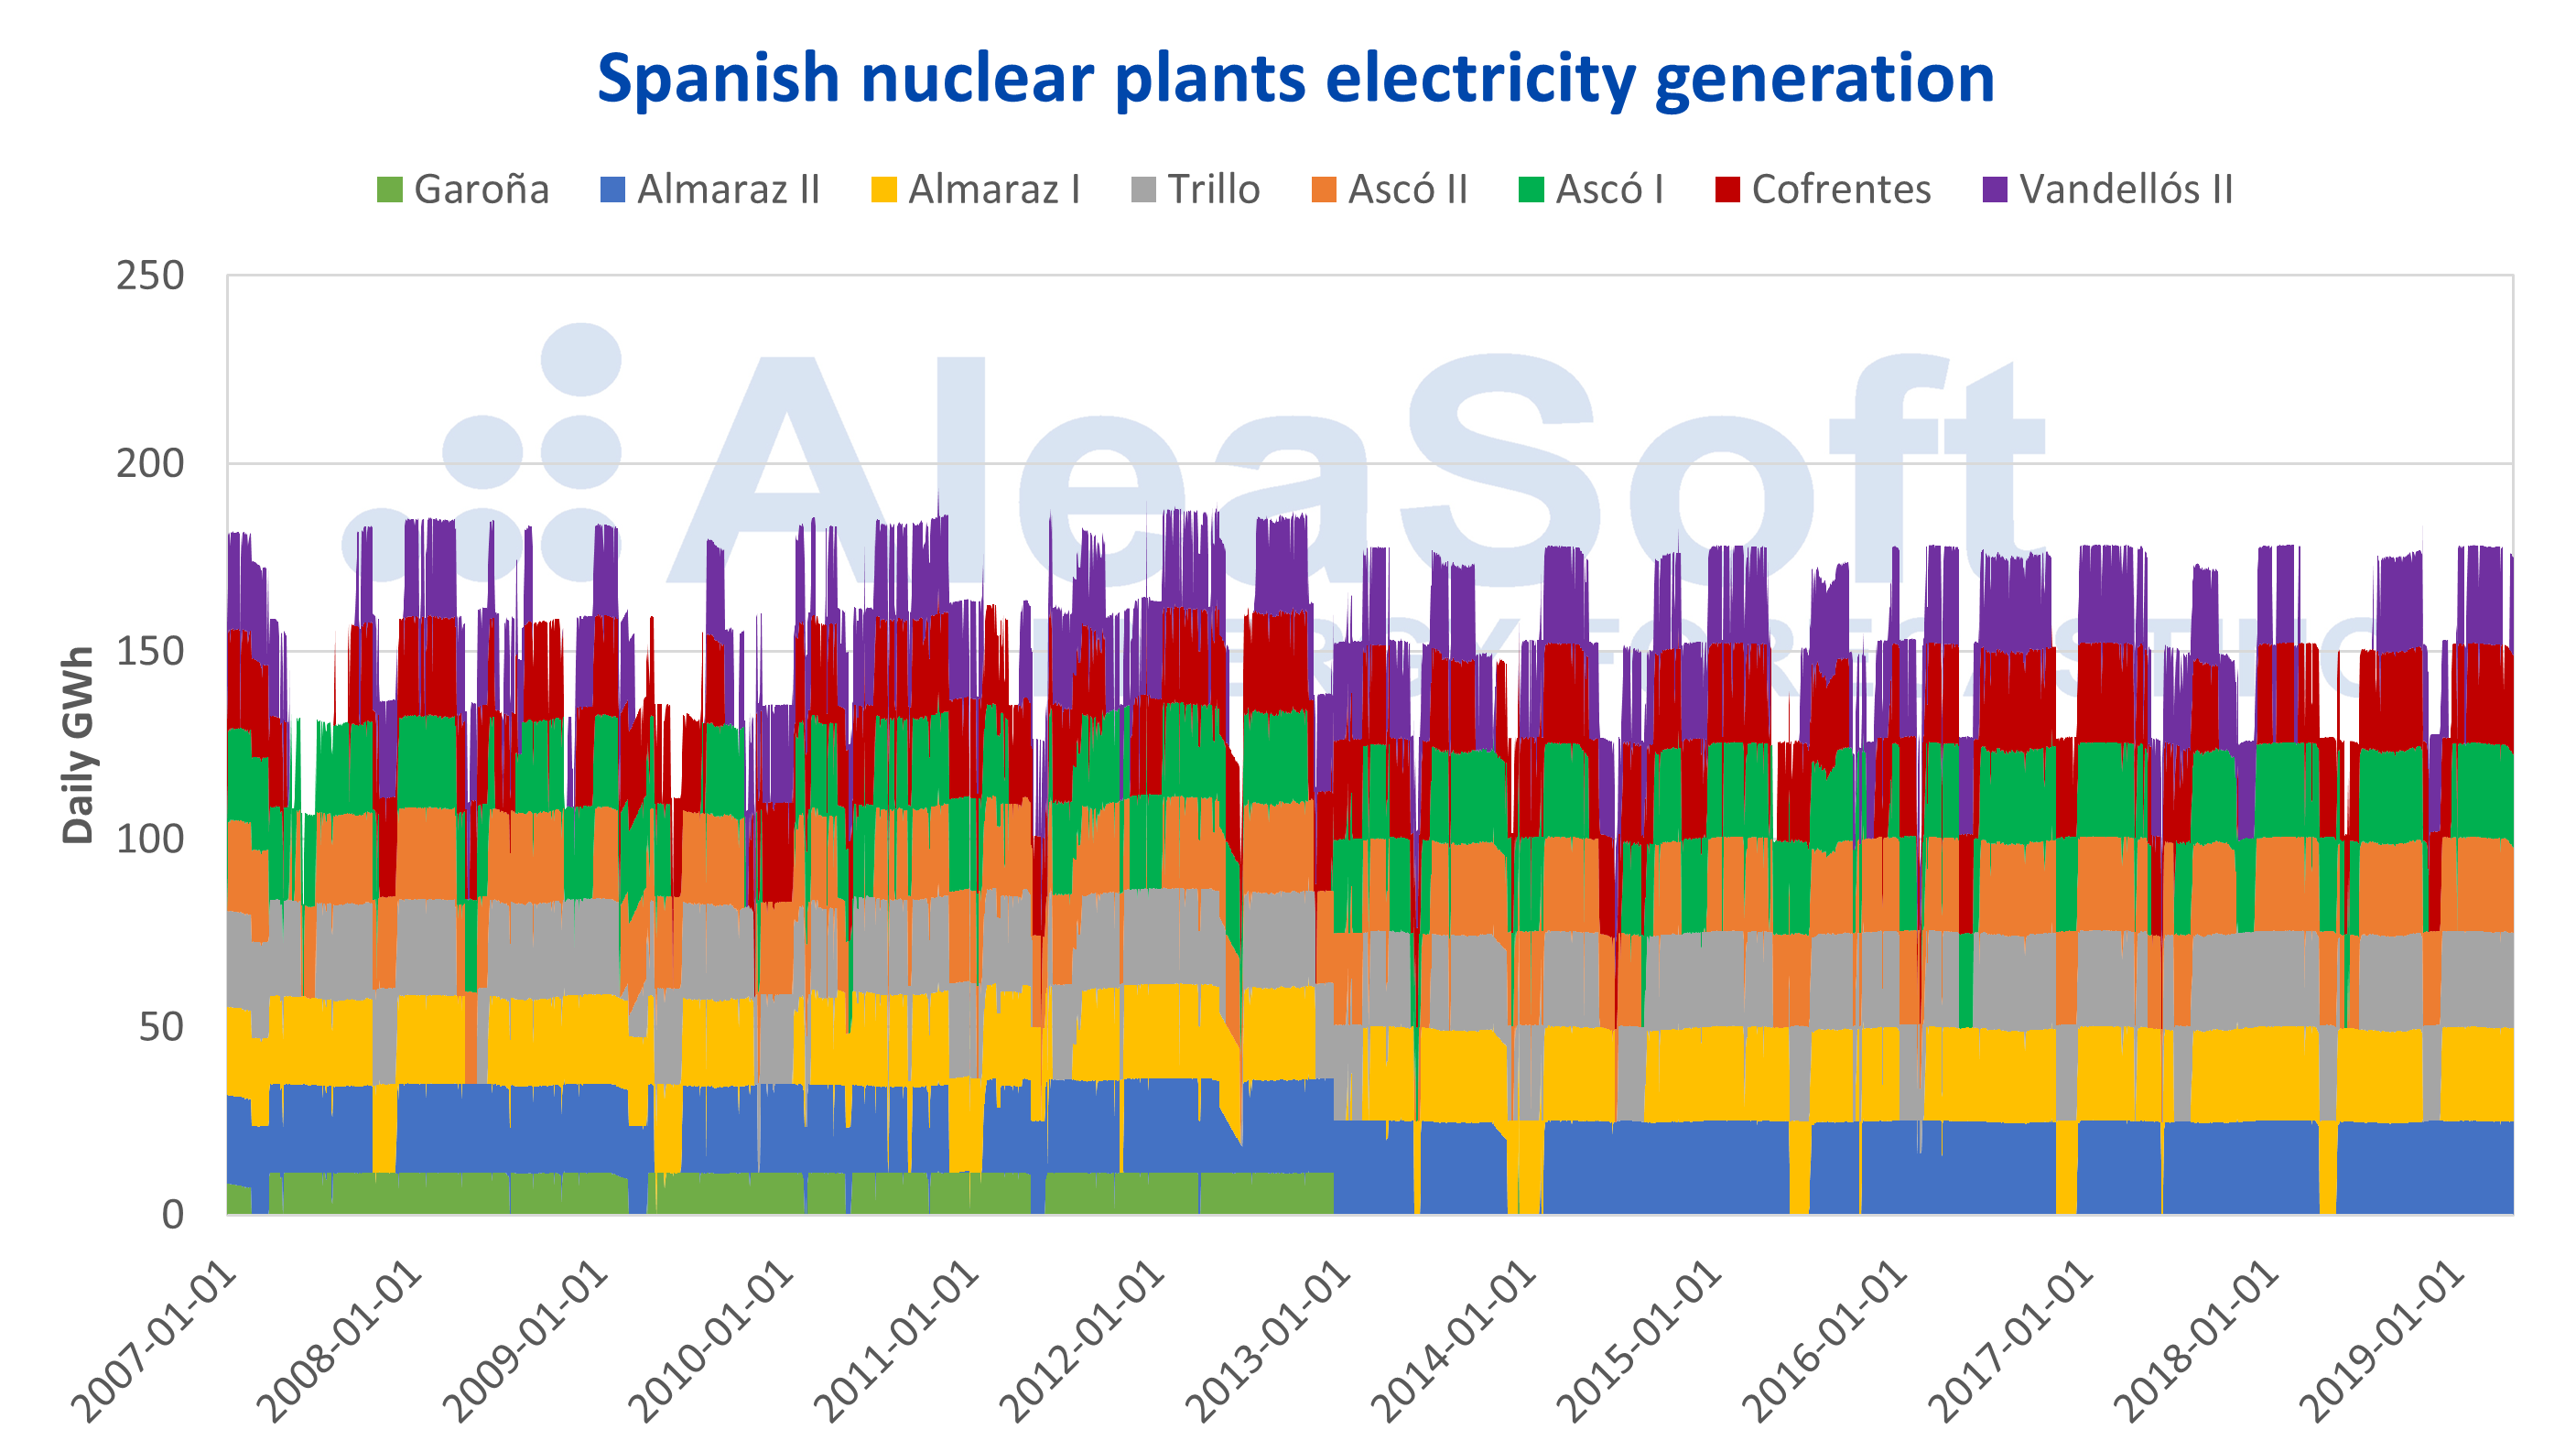 AleaSoft - Electricity generation nuclear plants Spain